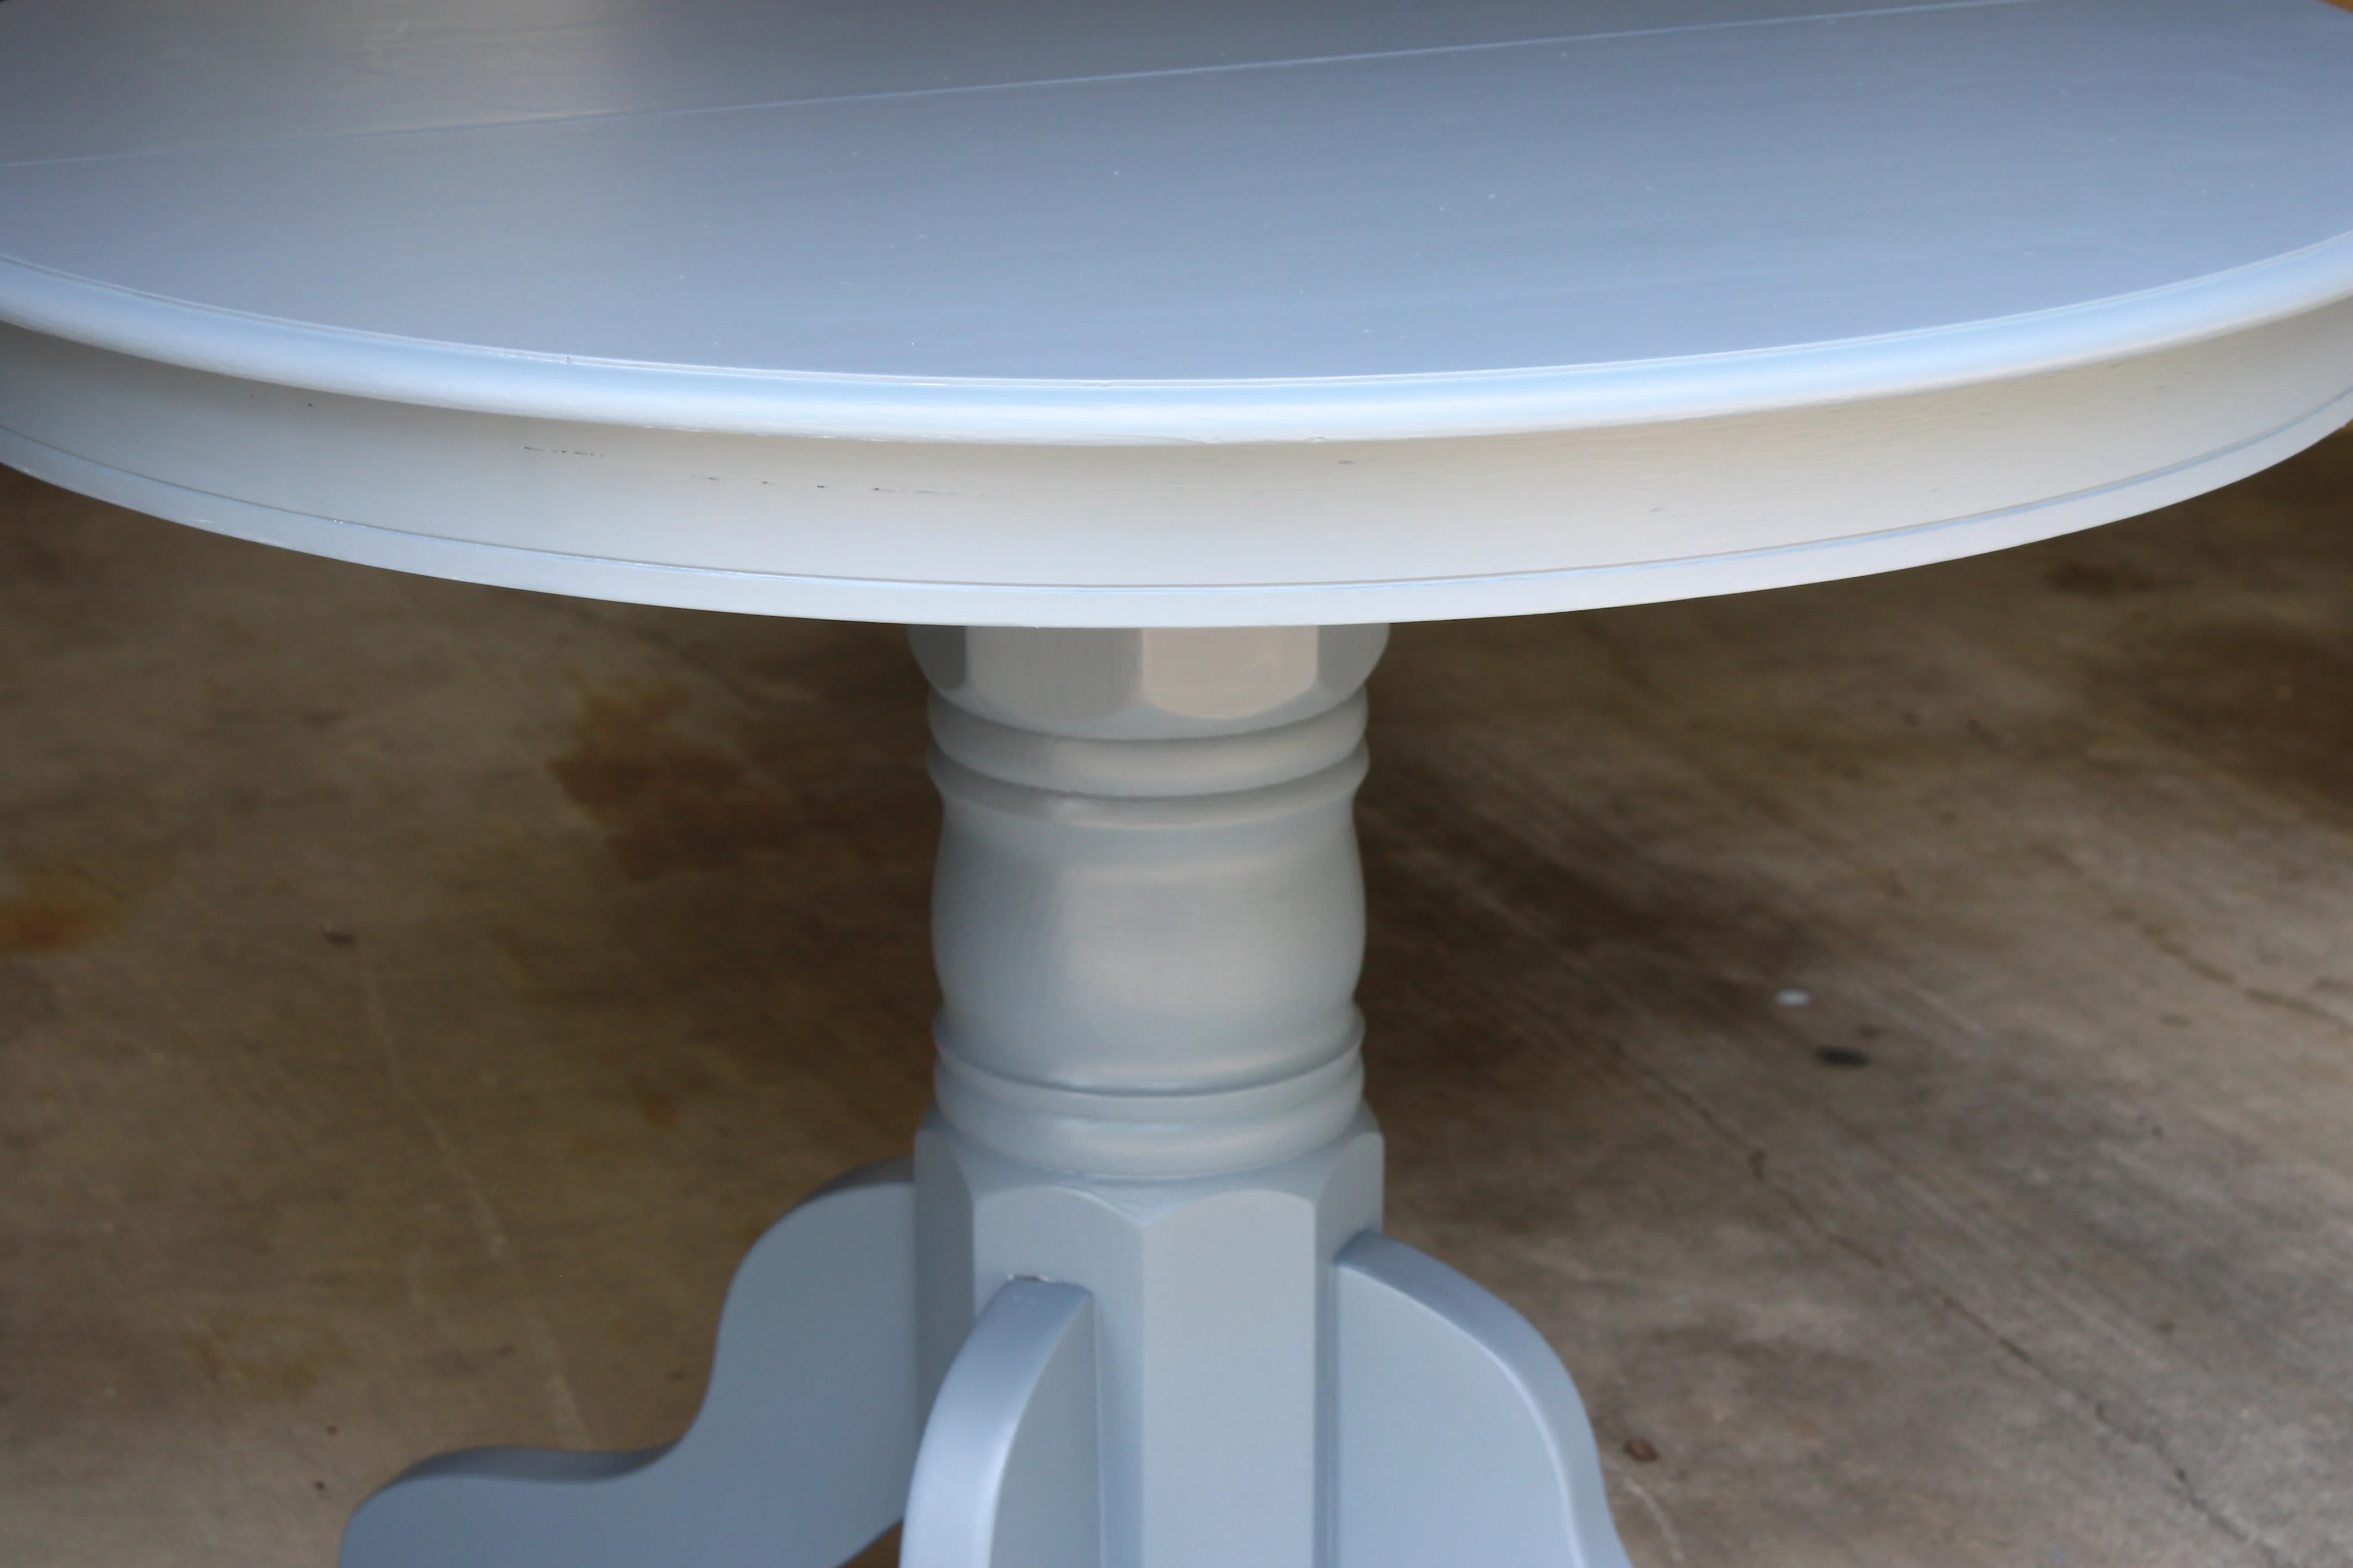 craft room table before and after oil based paint tricks painting kitchen table Tips and tricks for working with oil based paints to create a flawless finish The